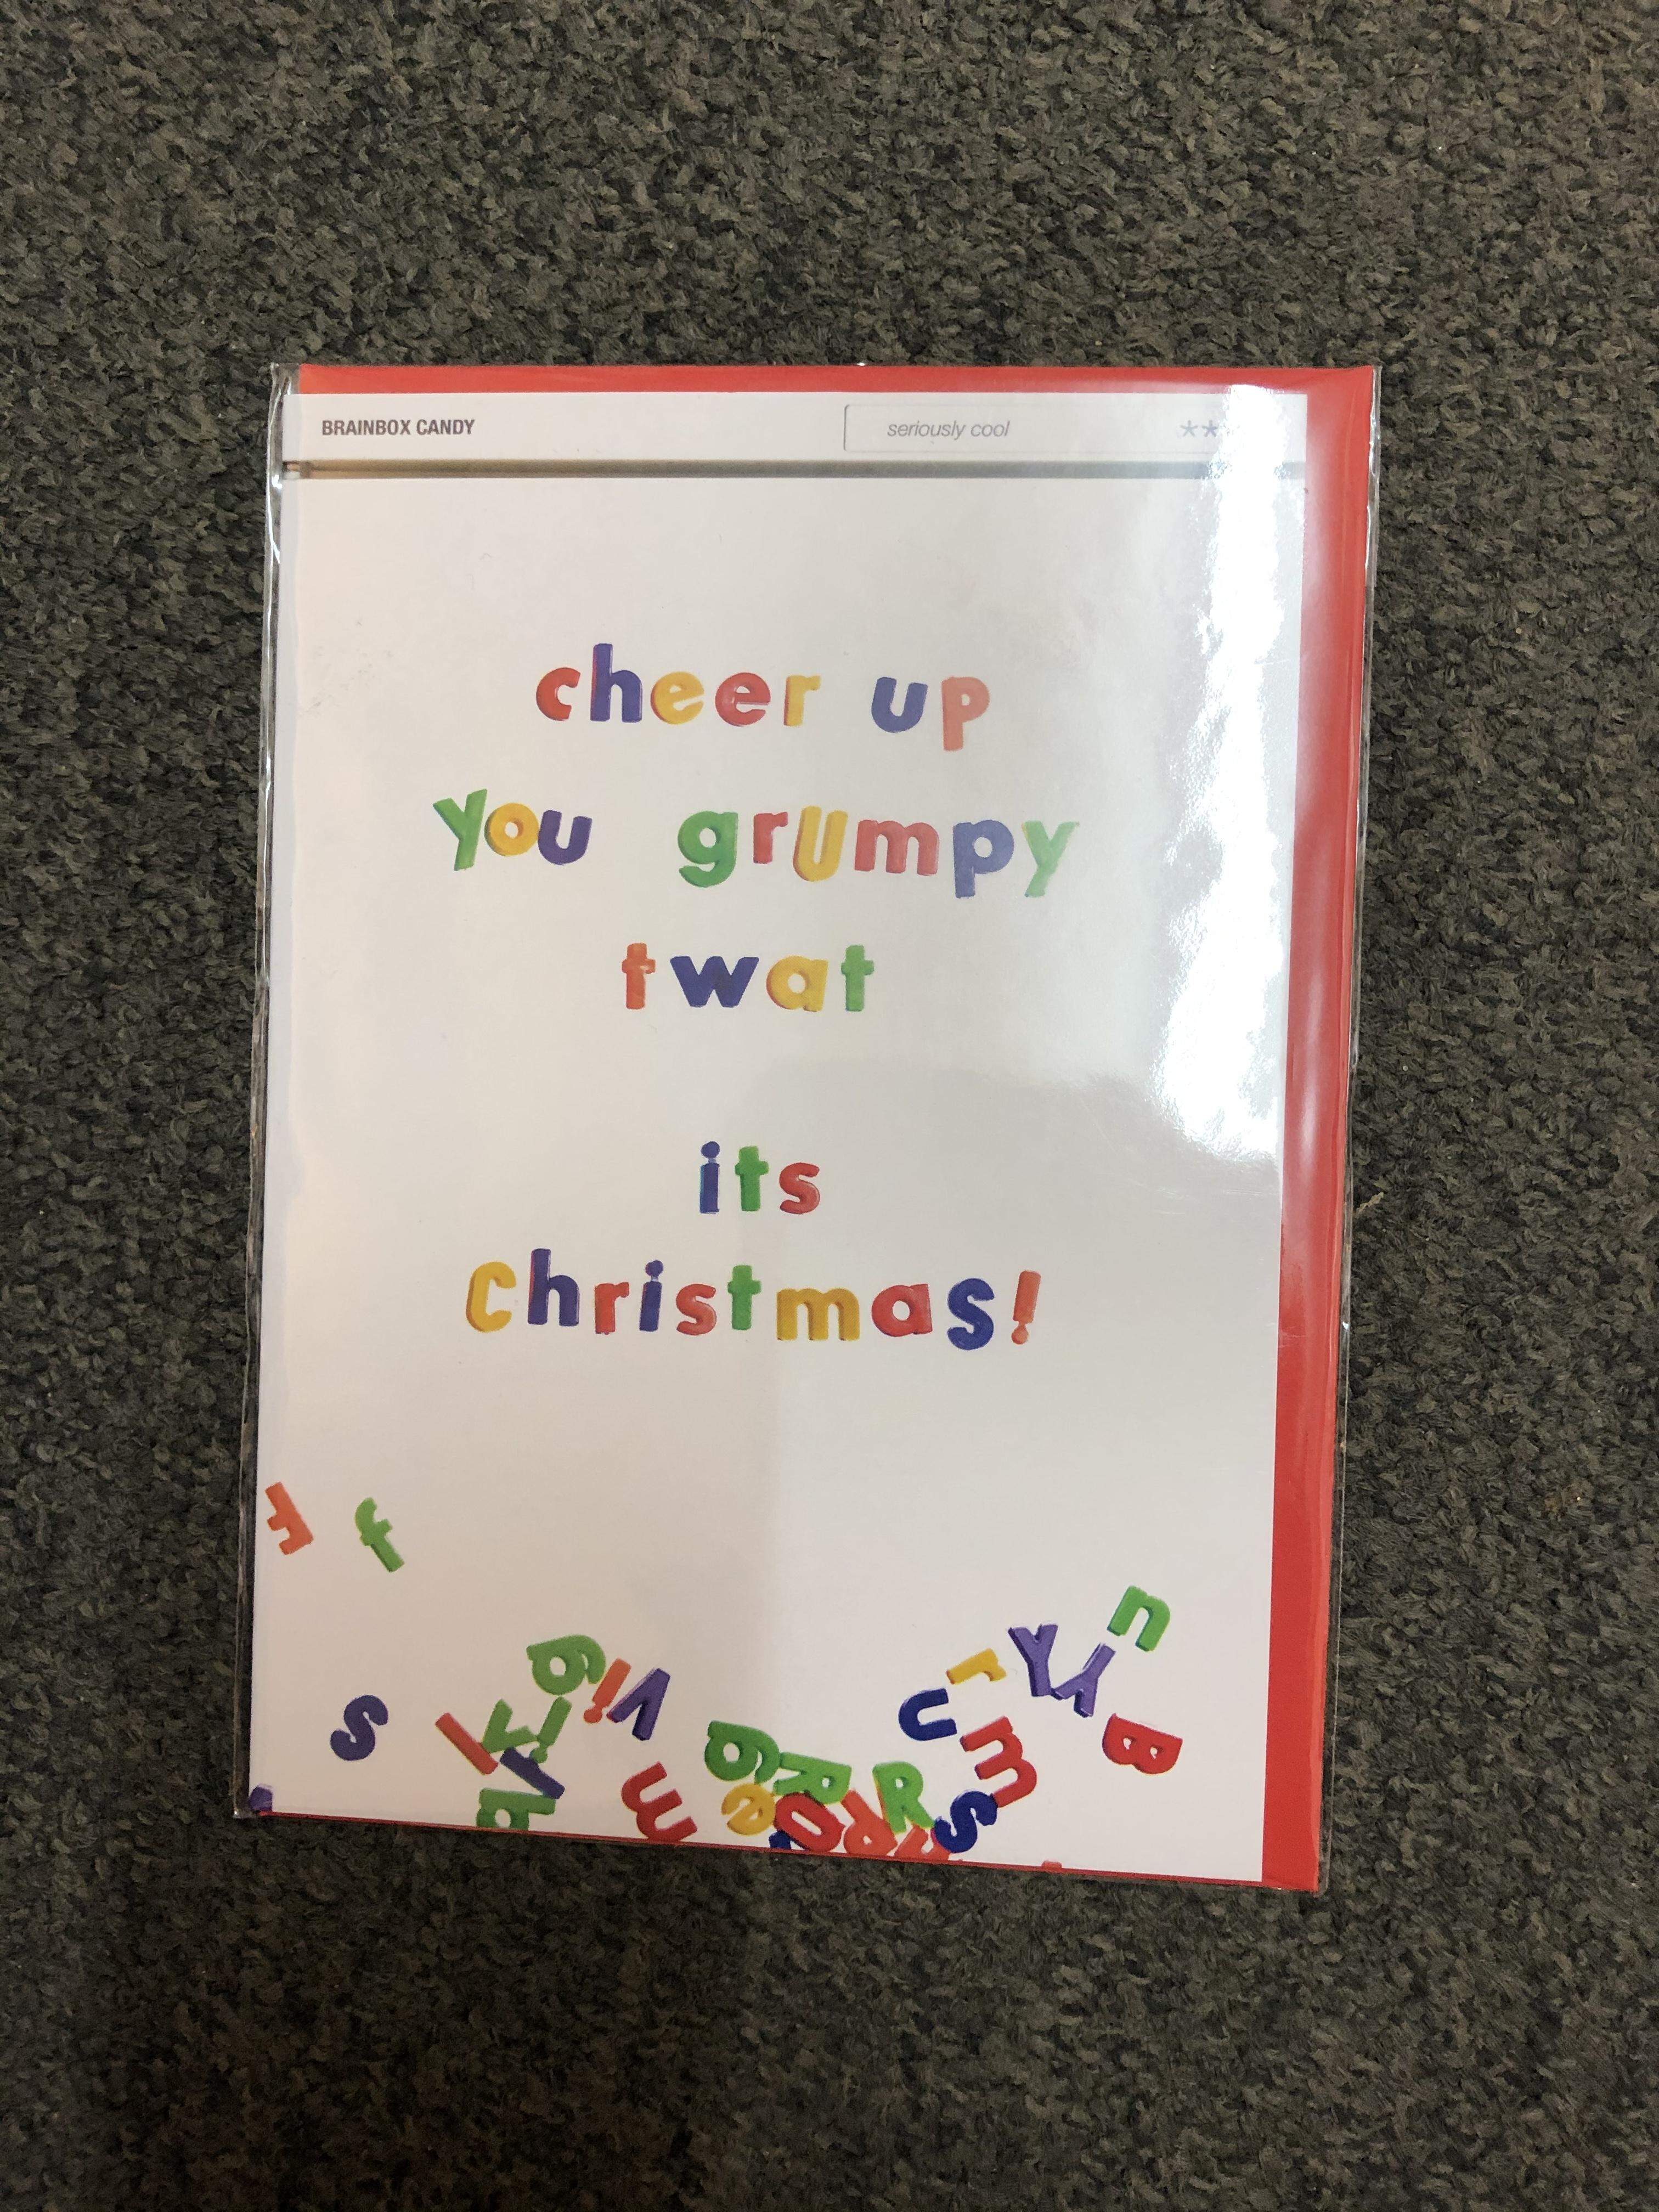 'Cheer up you grumpy T***' - It's Christmas